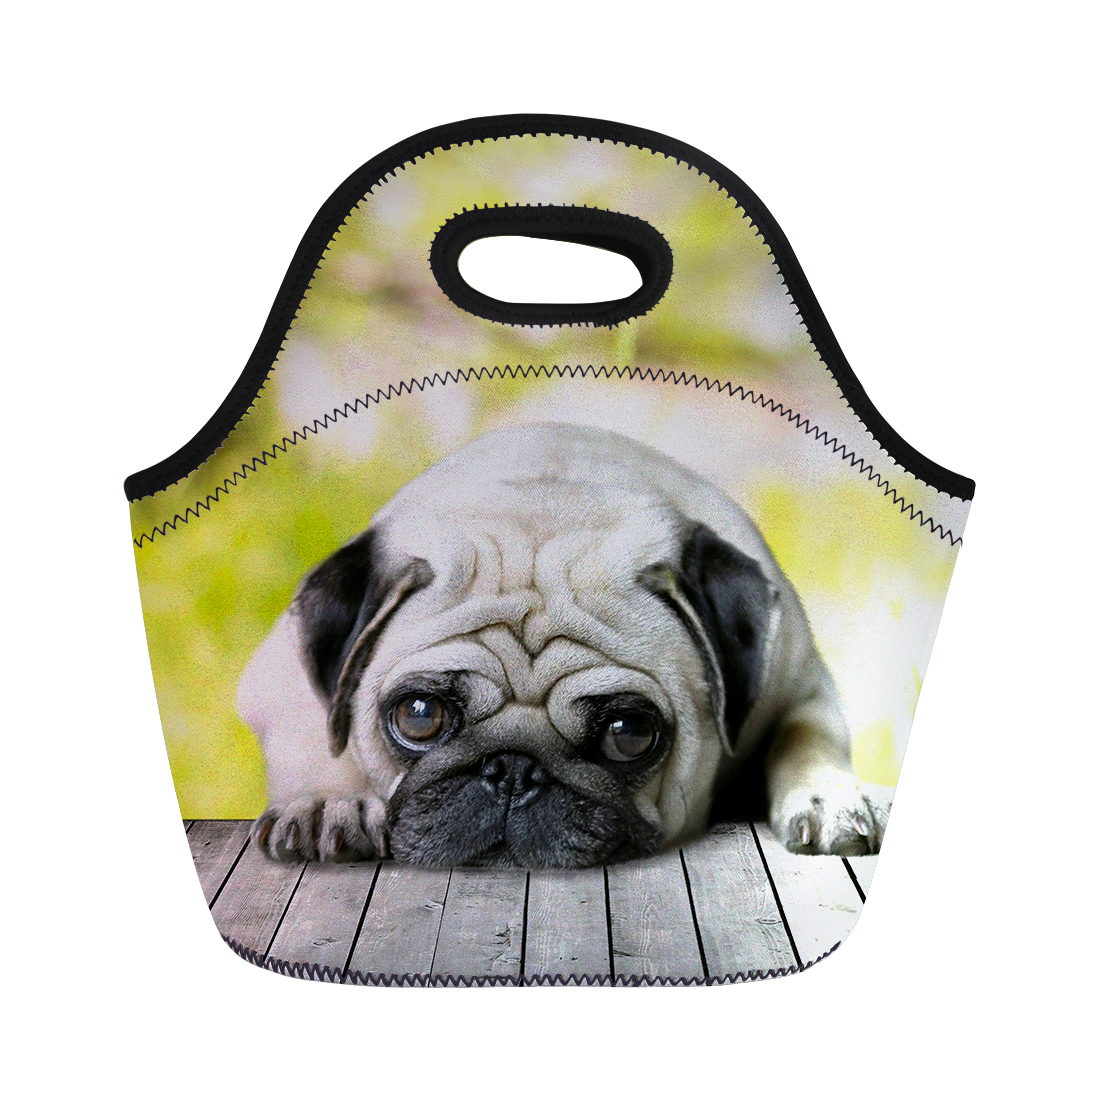 NOISYDESIGNS Soft Small Bulldog Printing Lunch Bags for Kids School Thermal Insulate Food Carry Lunchbags Woman Picnic Totes